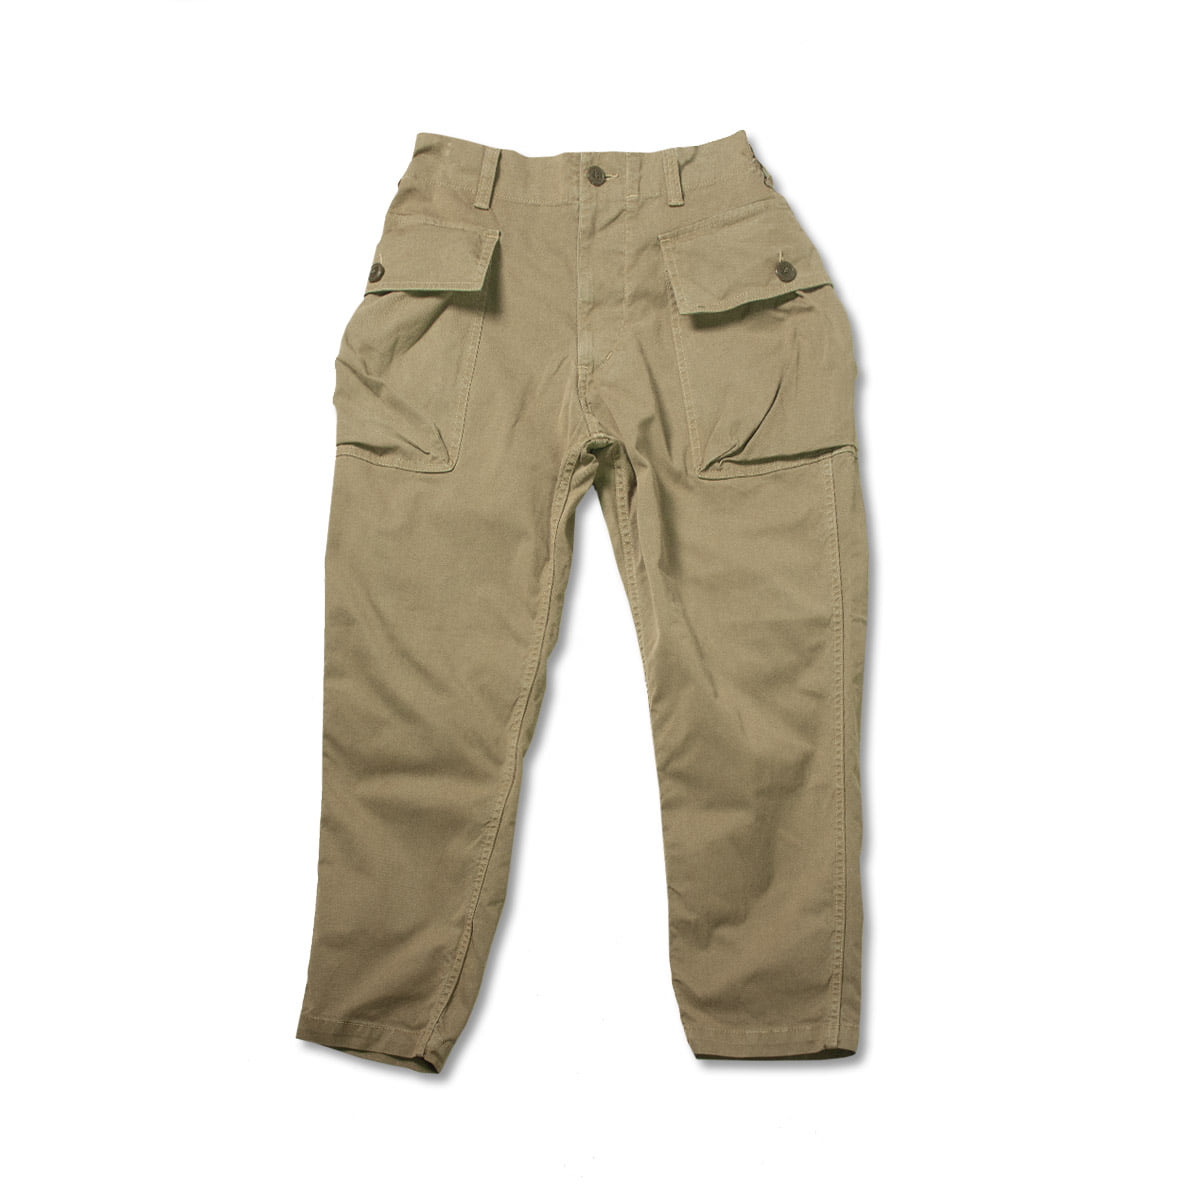 [SAGE DE CRET] TWILL COTTON CARGO PANTS 'BEIGE'